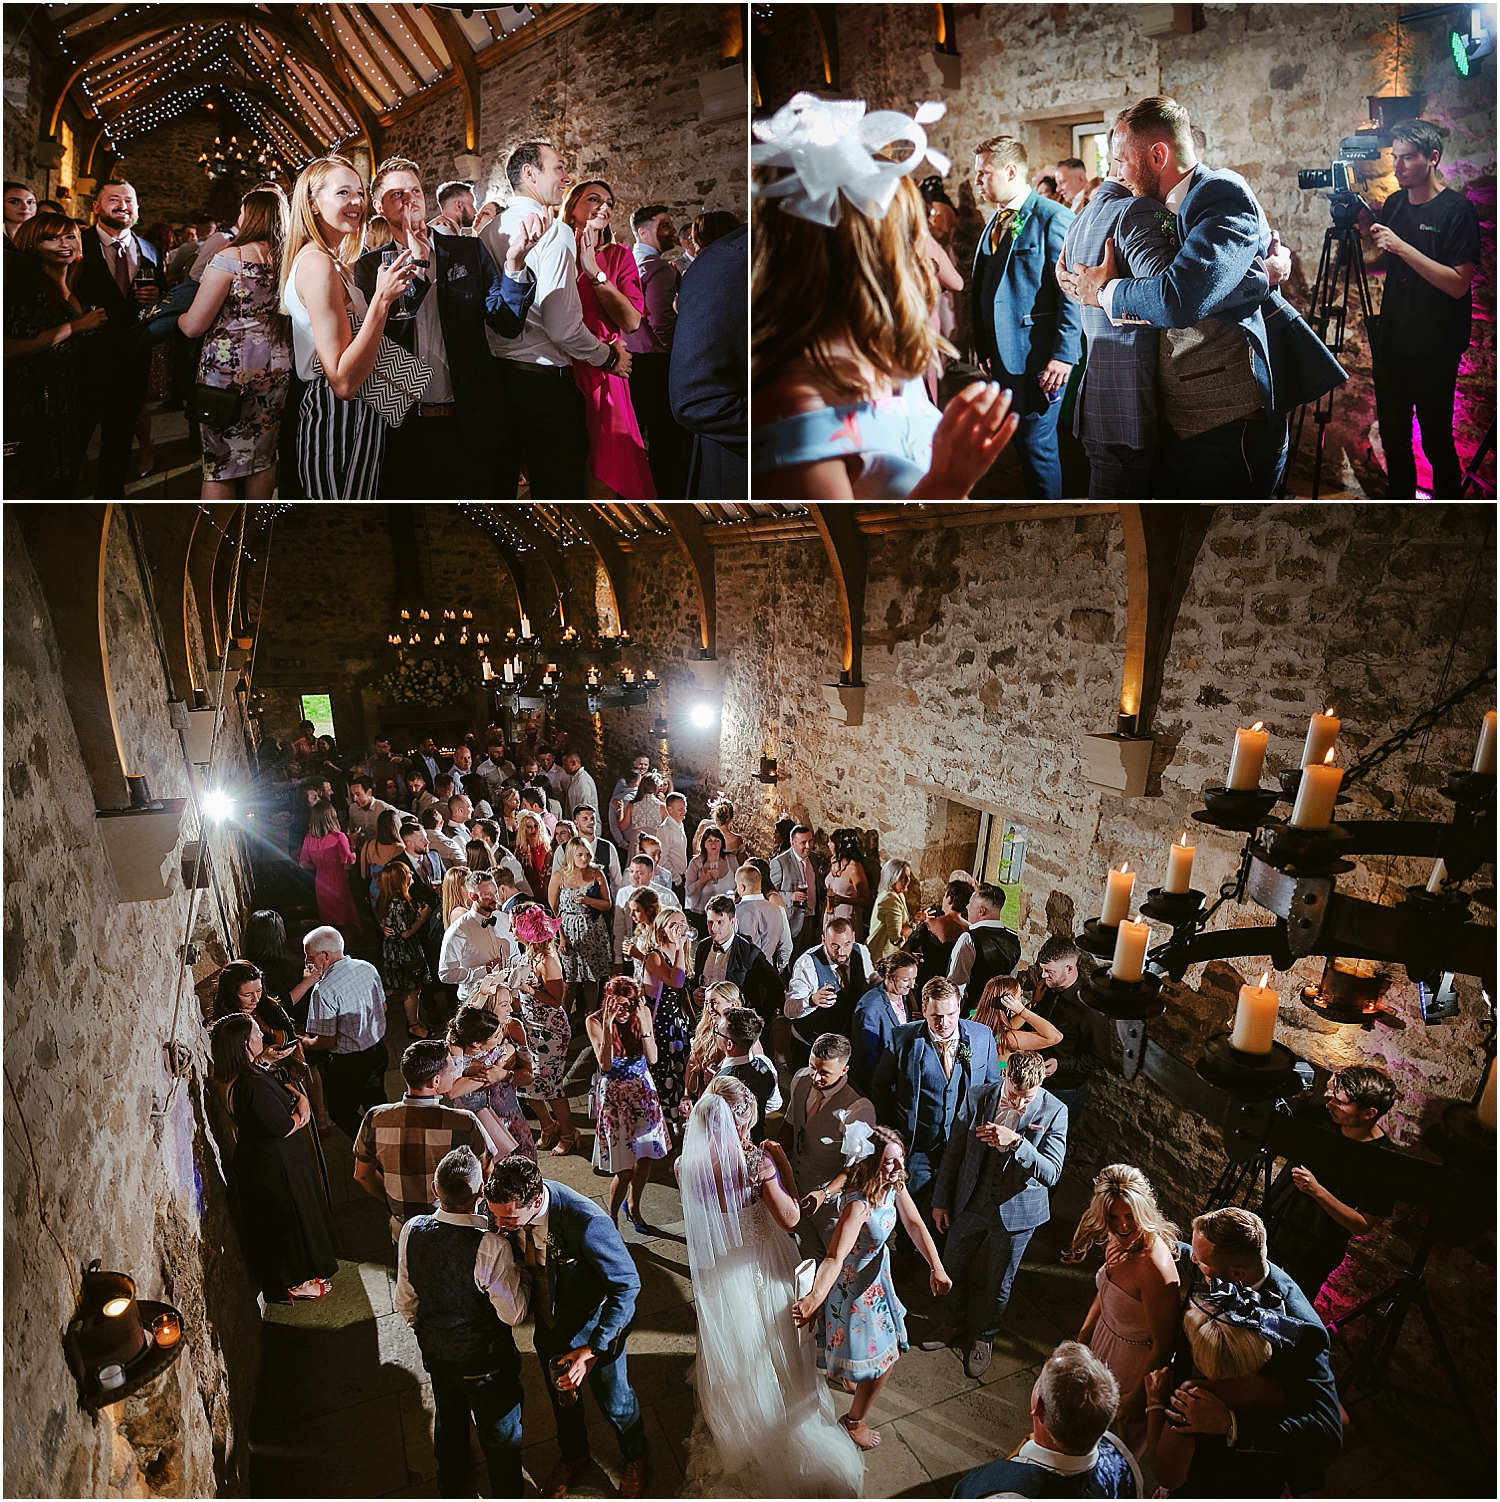 Wedding at Healey Barn - wedding photography by www.2tonephotography.co.uk 104.jpg